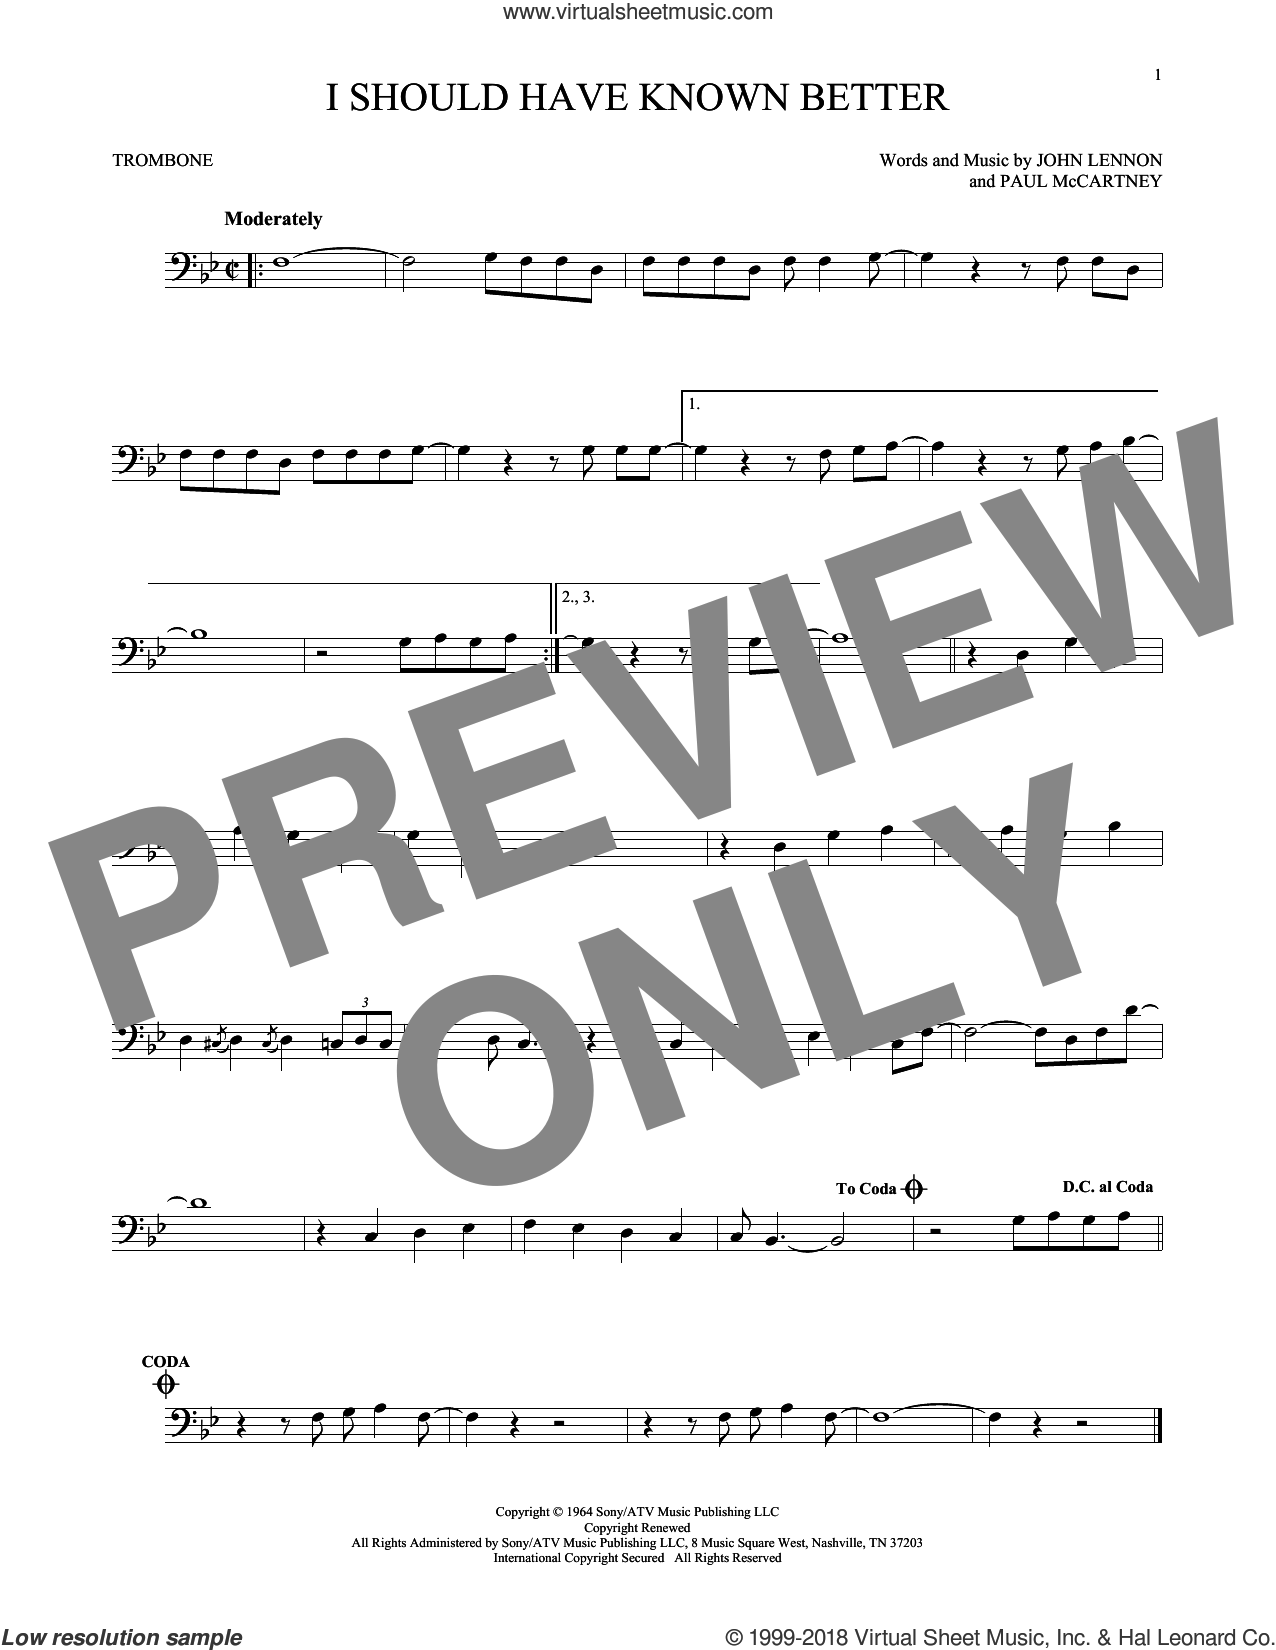 I Should Have Known Better sheet music for trombone solo by The Beatles, John Lennon and Paul McCartney, intermediate trombone. Score Image Preview.